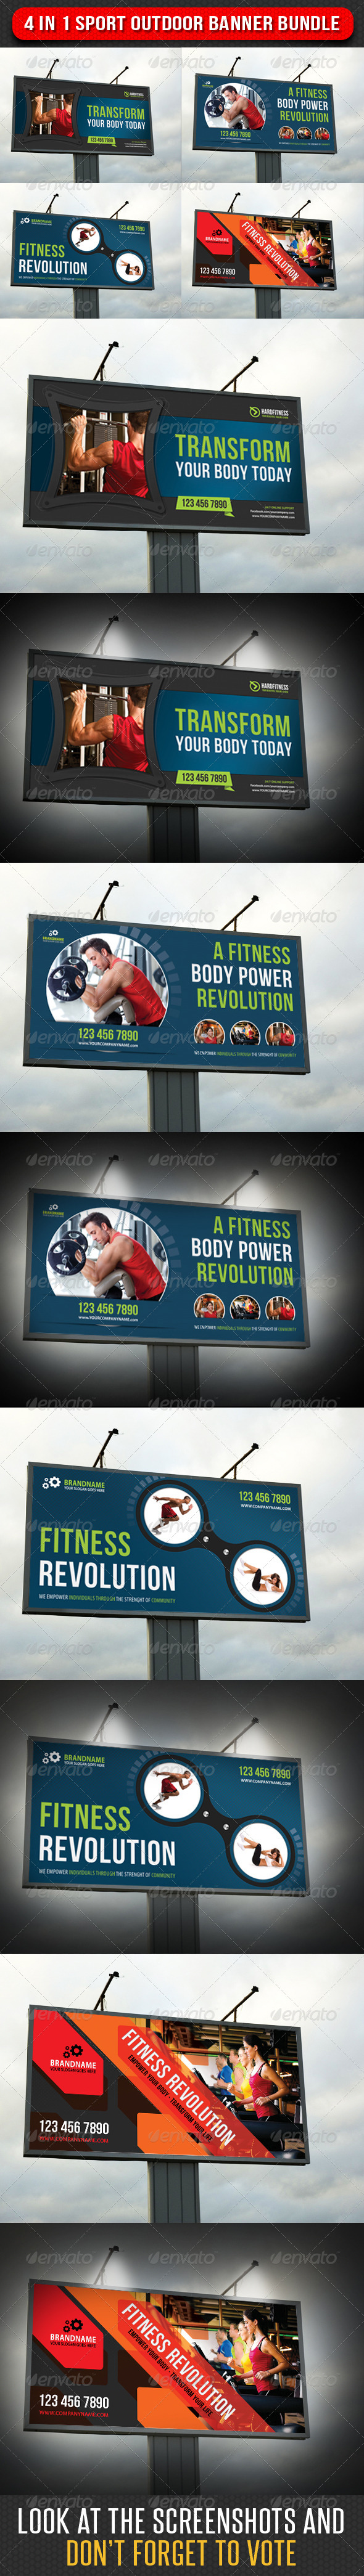 4 in 1 Sport Outdoor Banner Bundle 02